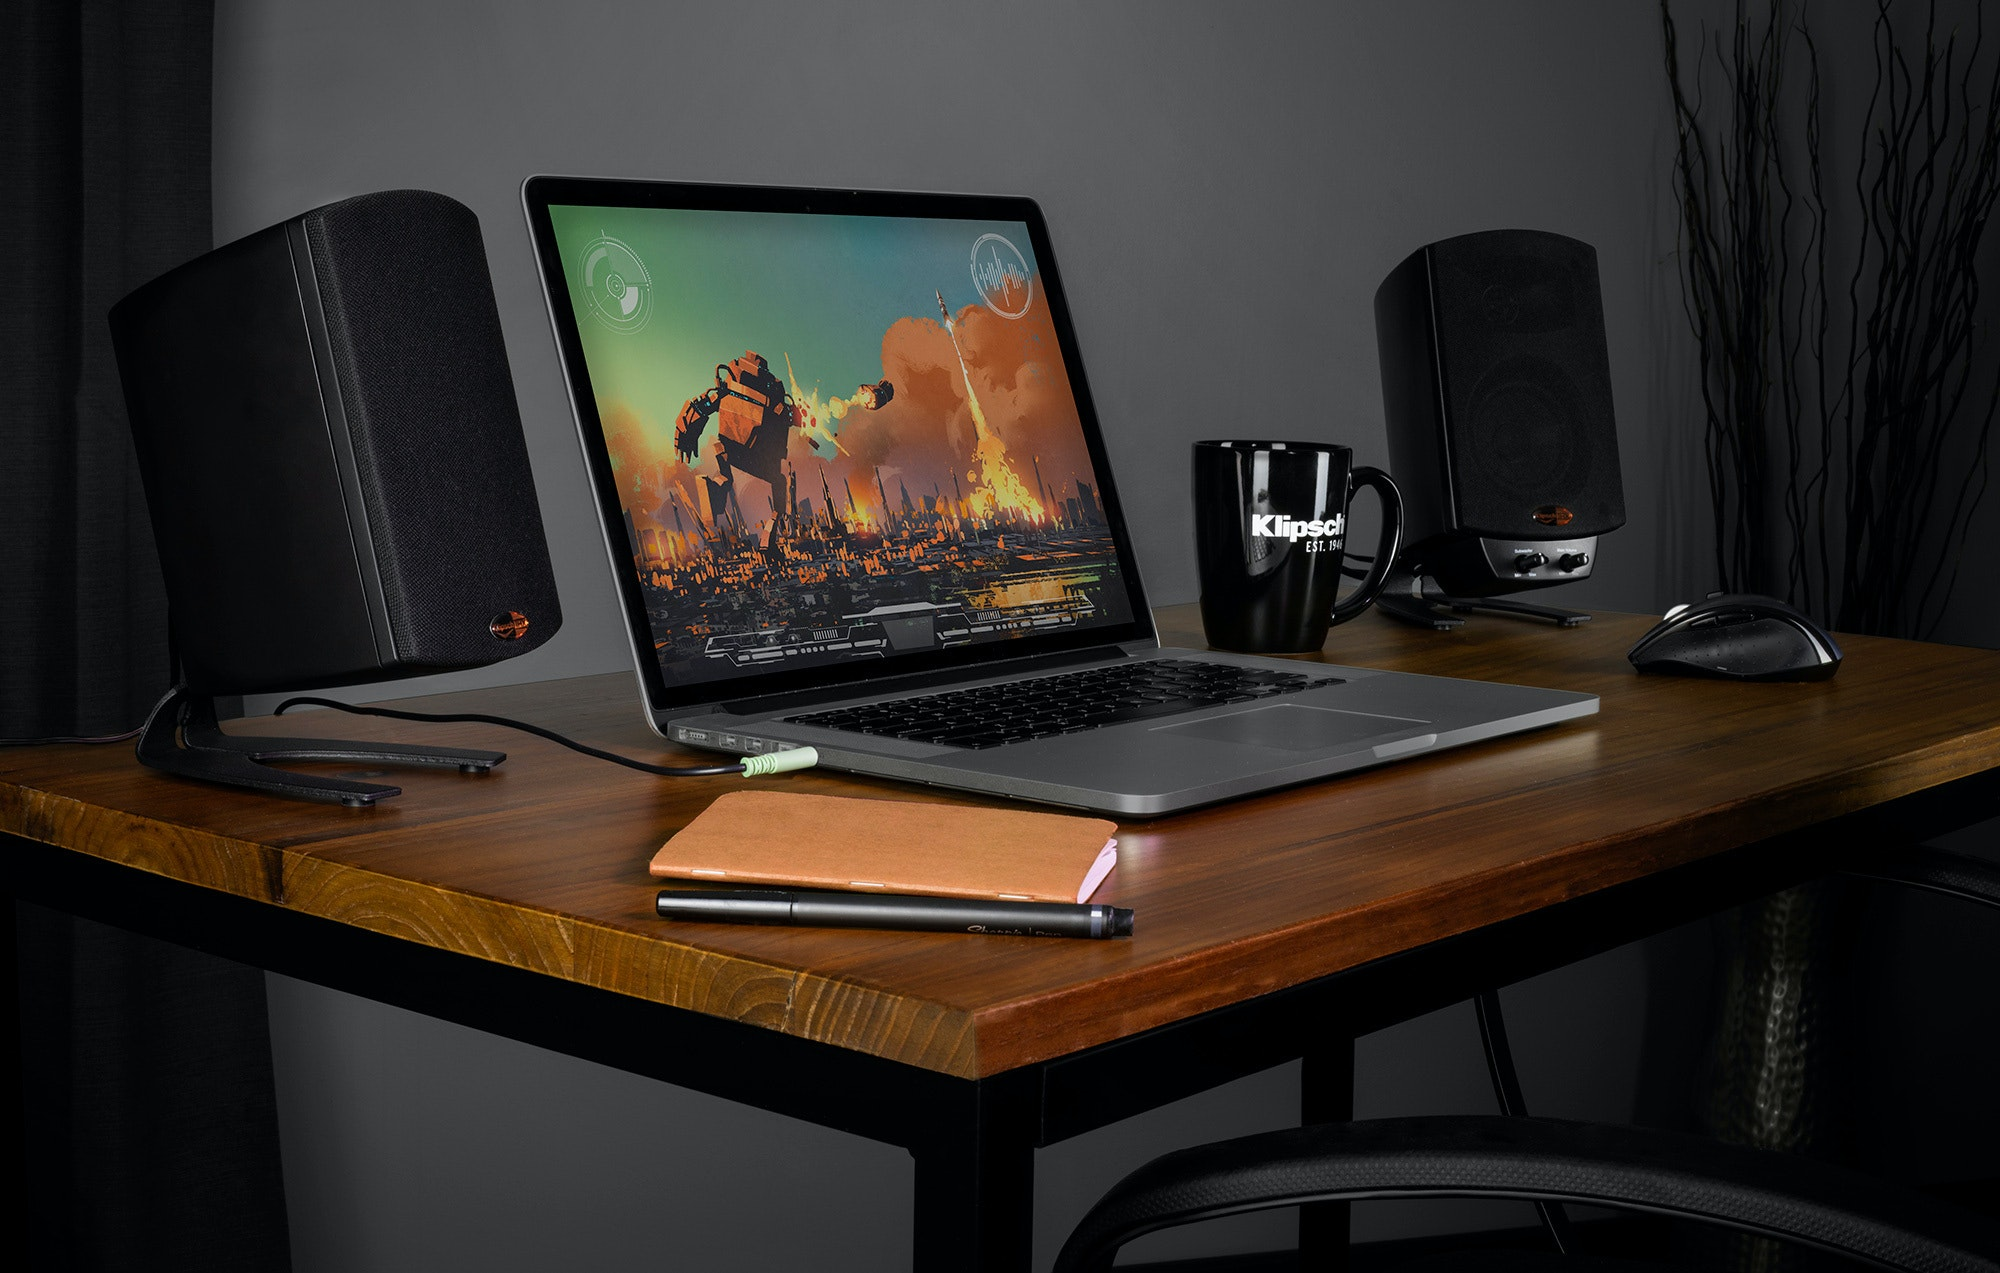 ProMedia 2.1 THX Computer speakers flanking a laptop on a desk